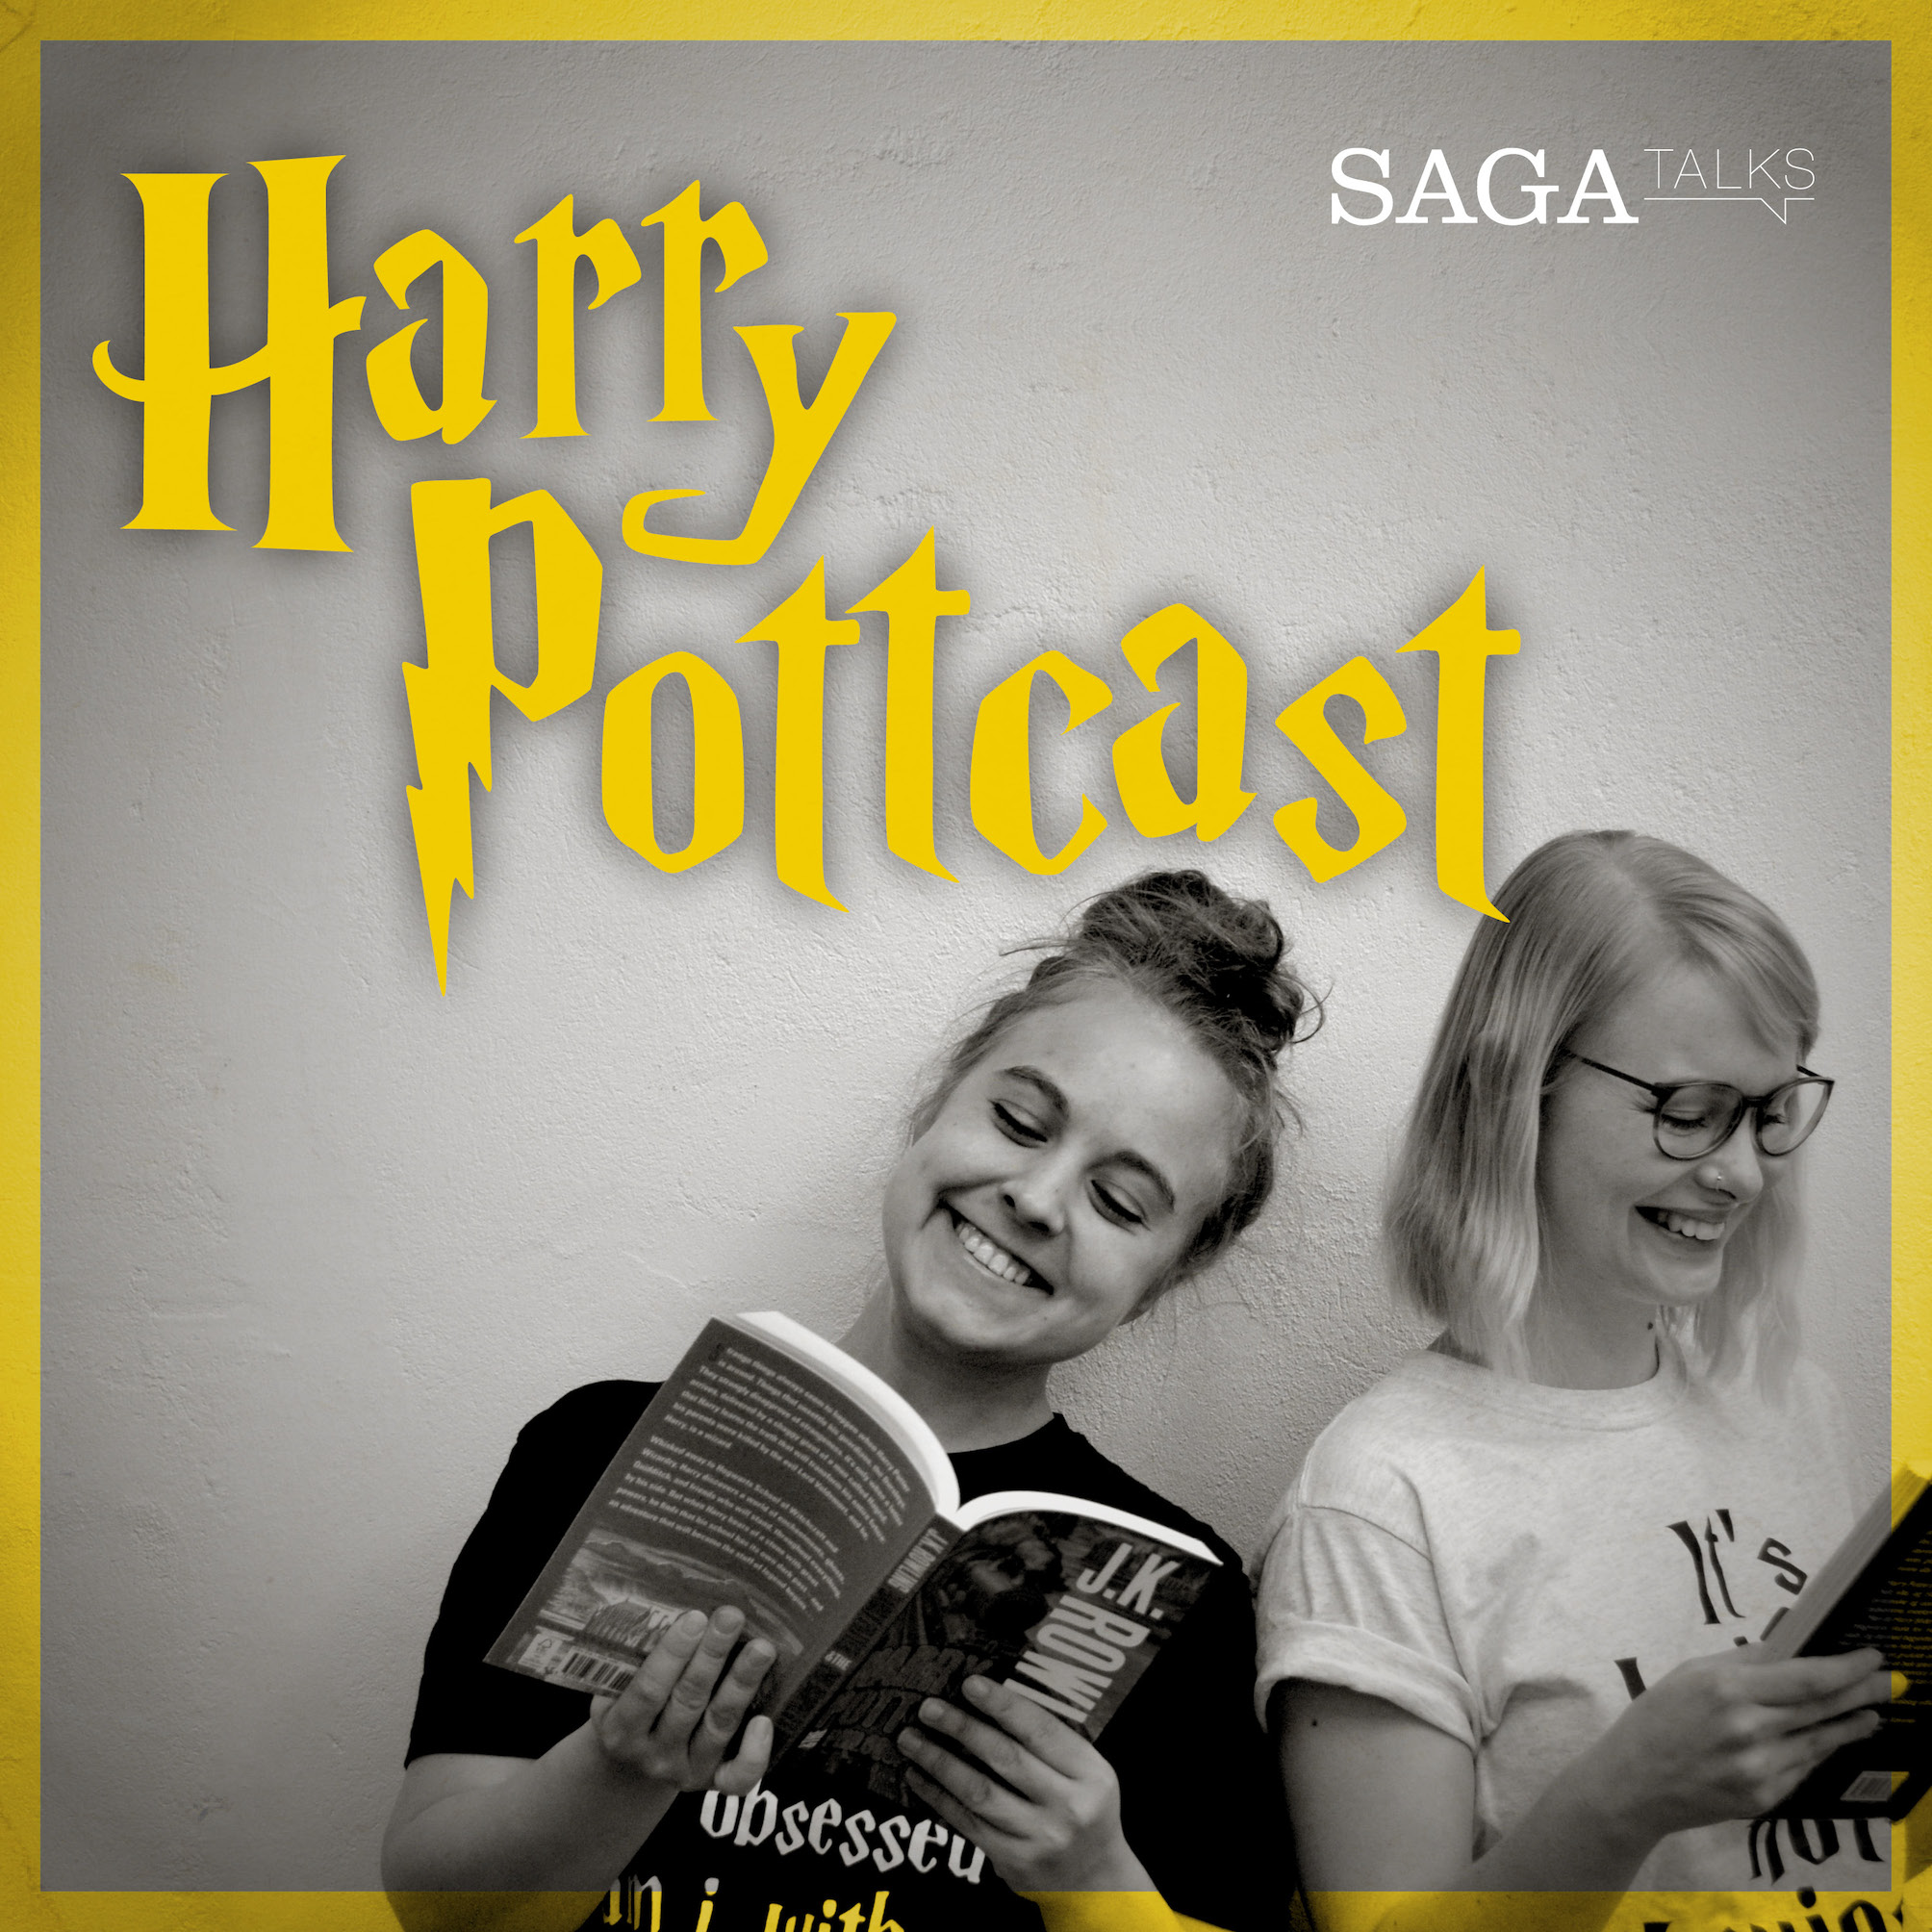 Harry Pottcast & Liveshow for DBSU